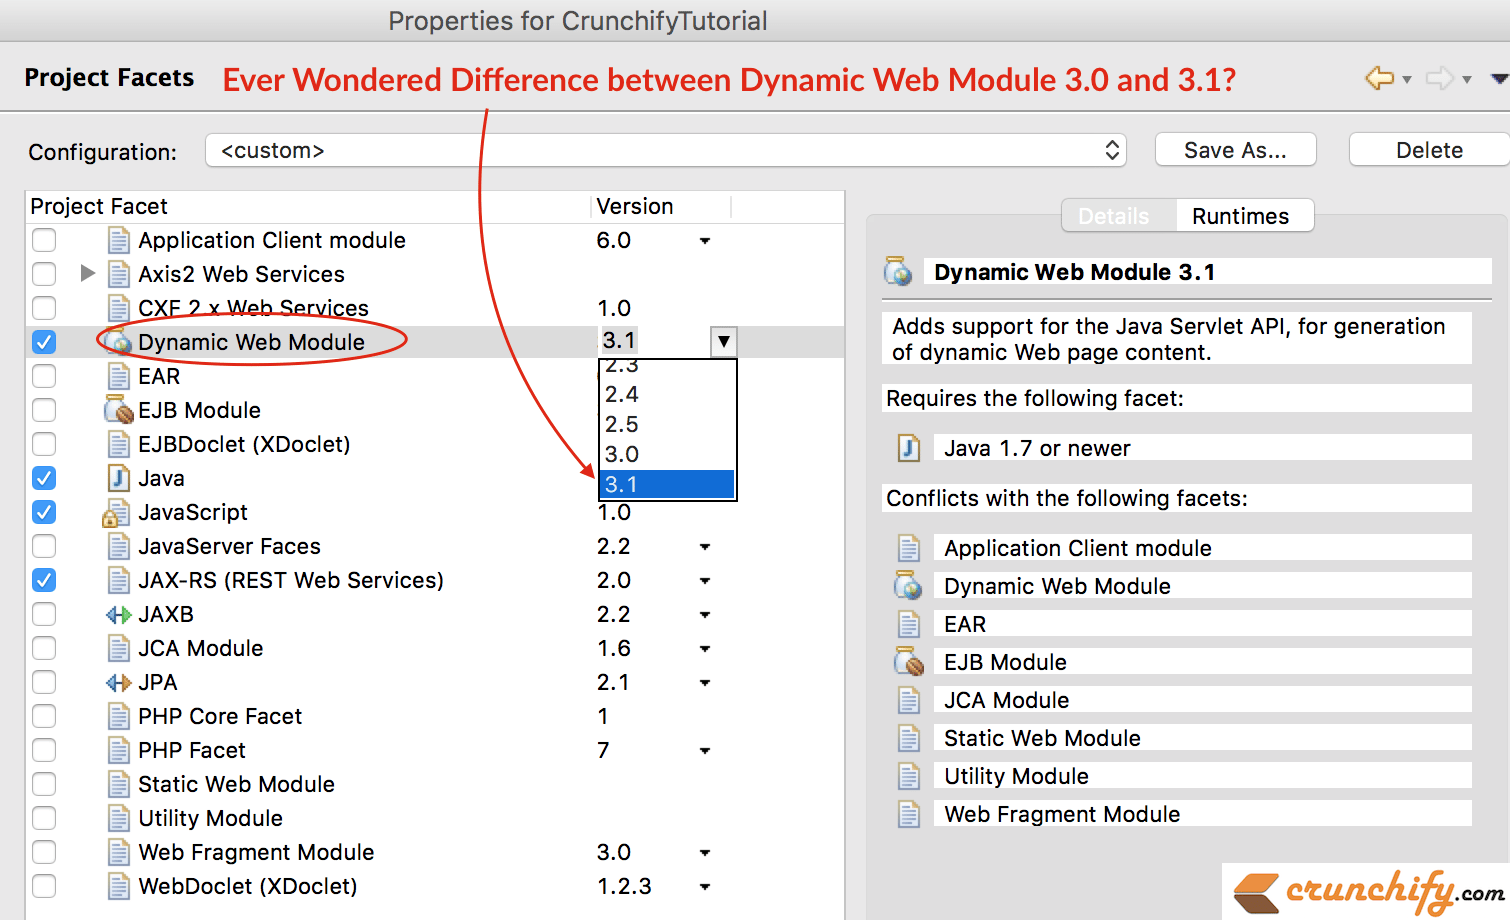 Ever wondered difference between Dynamic Web Module 3.0 and 3.1 - Crunchify Tips